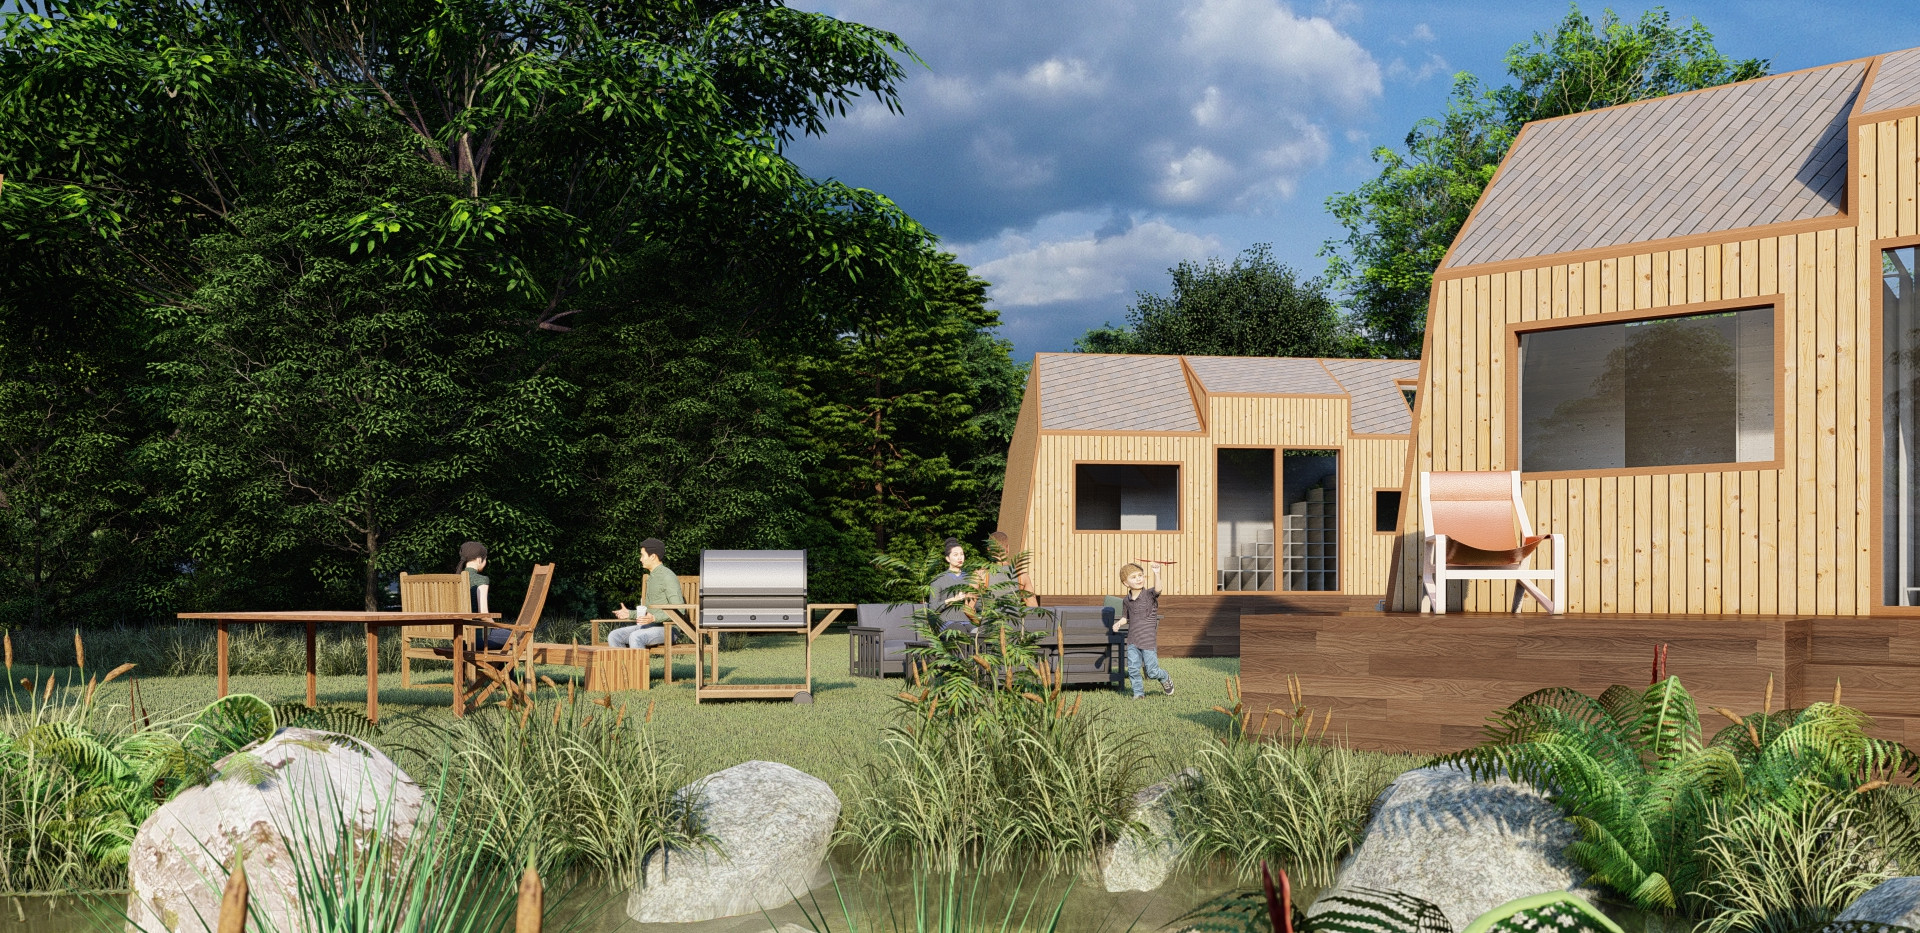 Tiny House Project Image 7.jpg